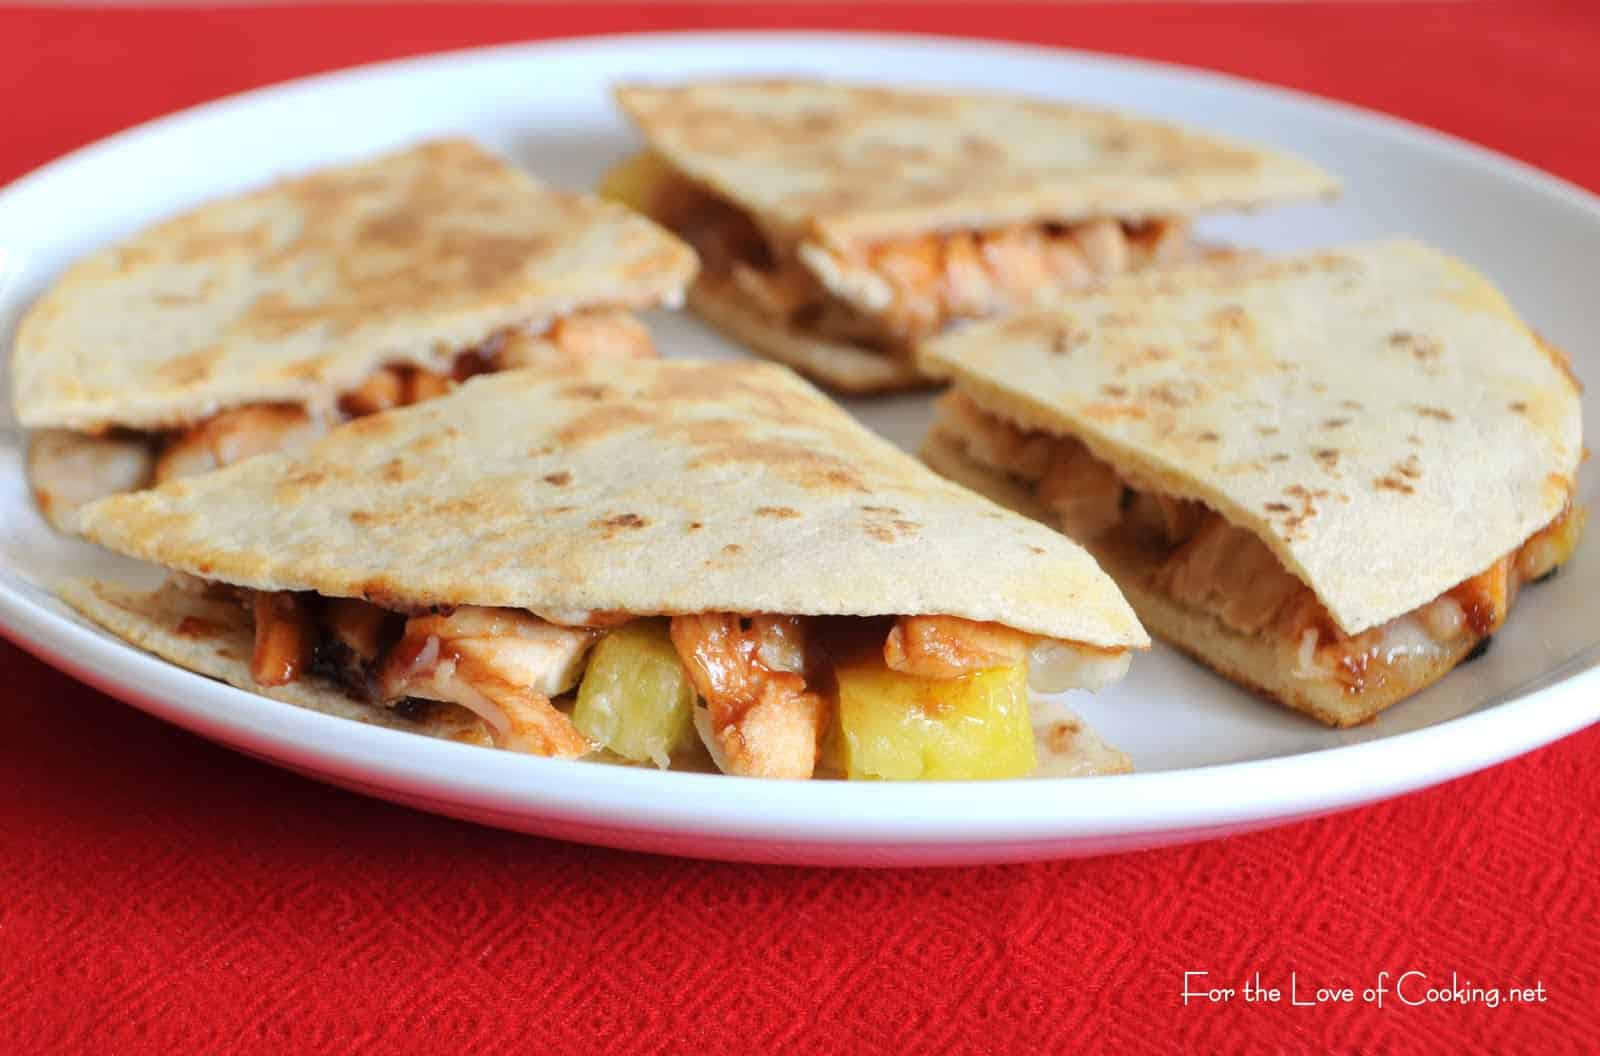 Barbecue Chicken and Pineapple Quesadillas - Cupcake Diaries